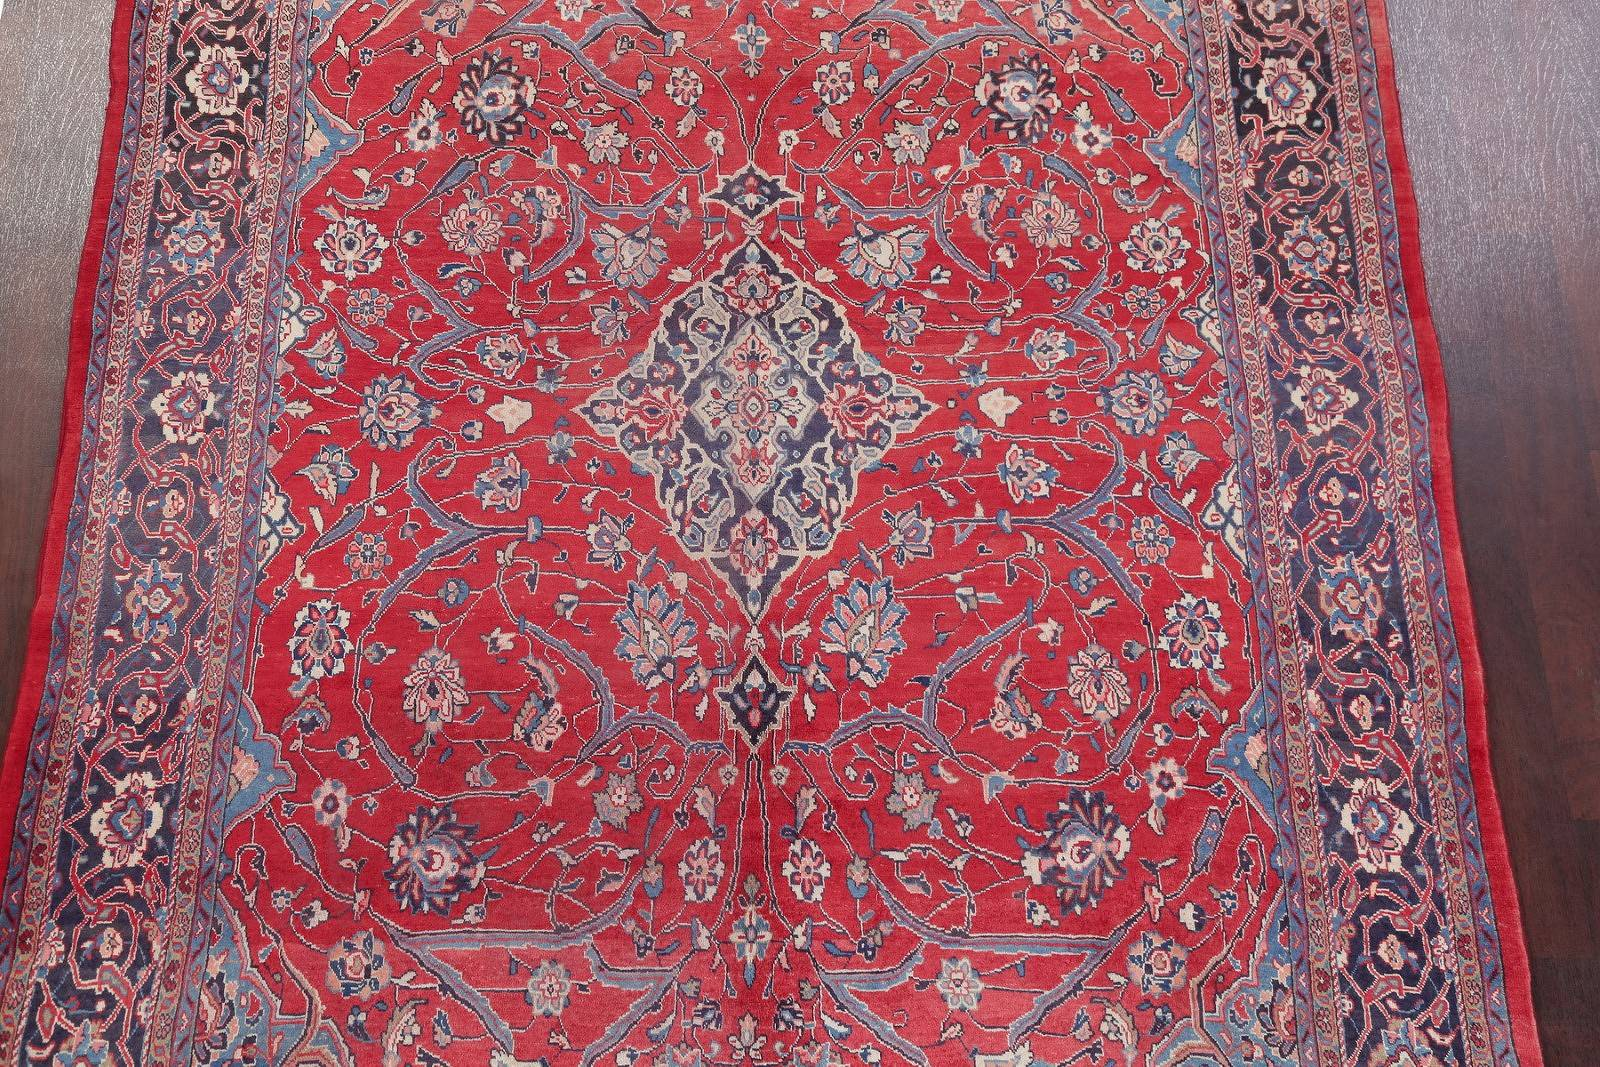 Hand-Knotted Red Floral Sarouk Persian Area Rug Wool 7x11